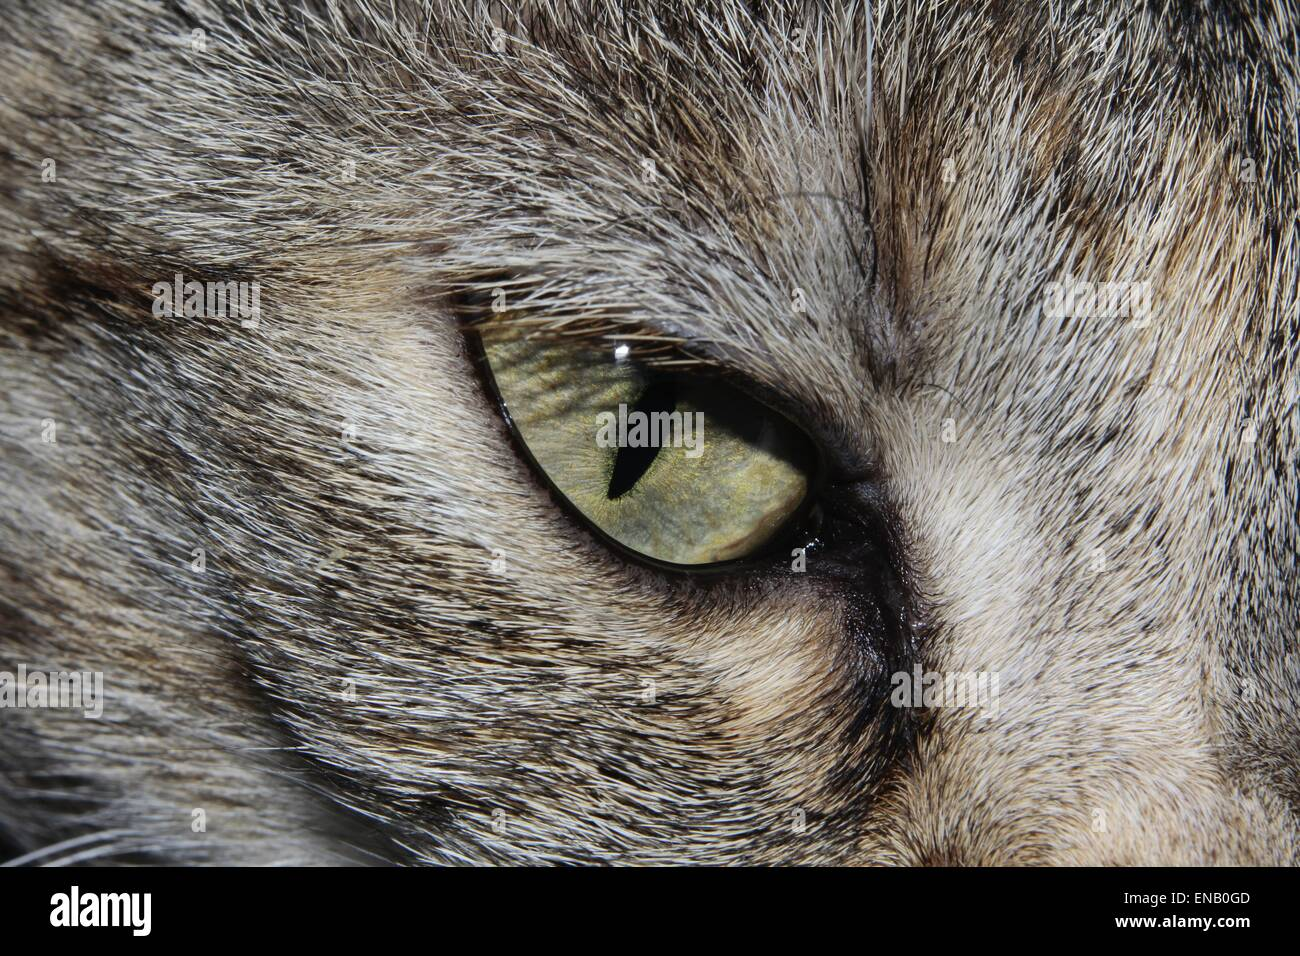 Close-up of a tabby cats eye - Stock Image